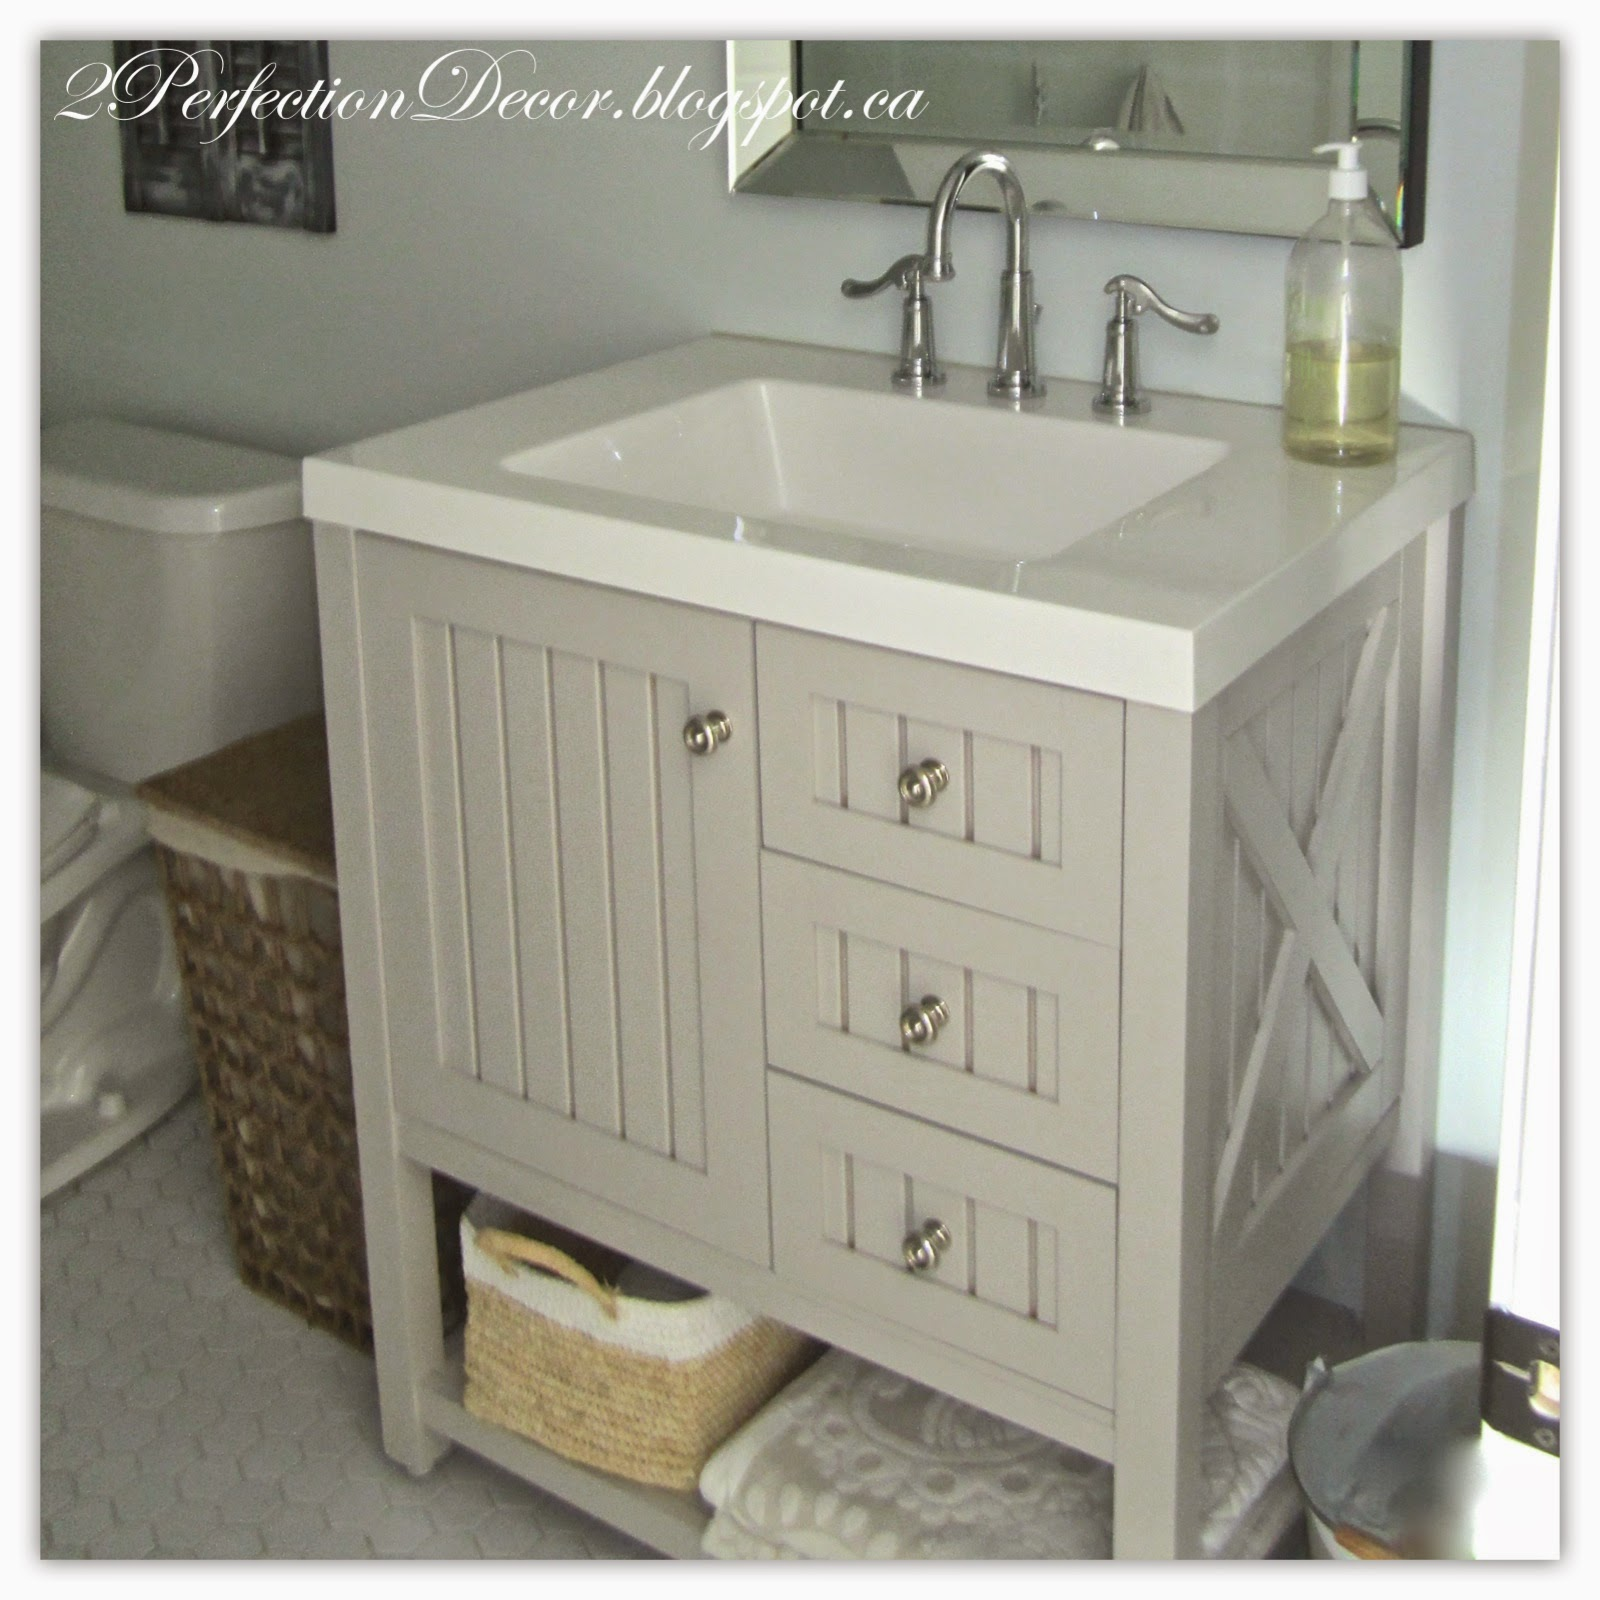 Basement Tub: 2Perfection Decor: Basement Coastal Bathroom Reveal